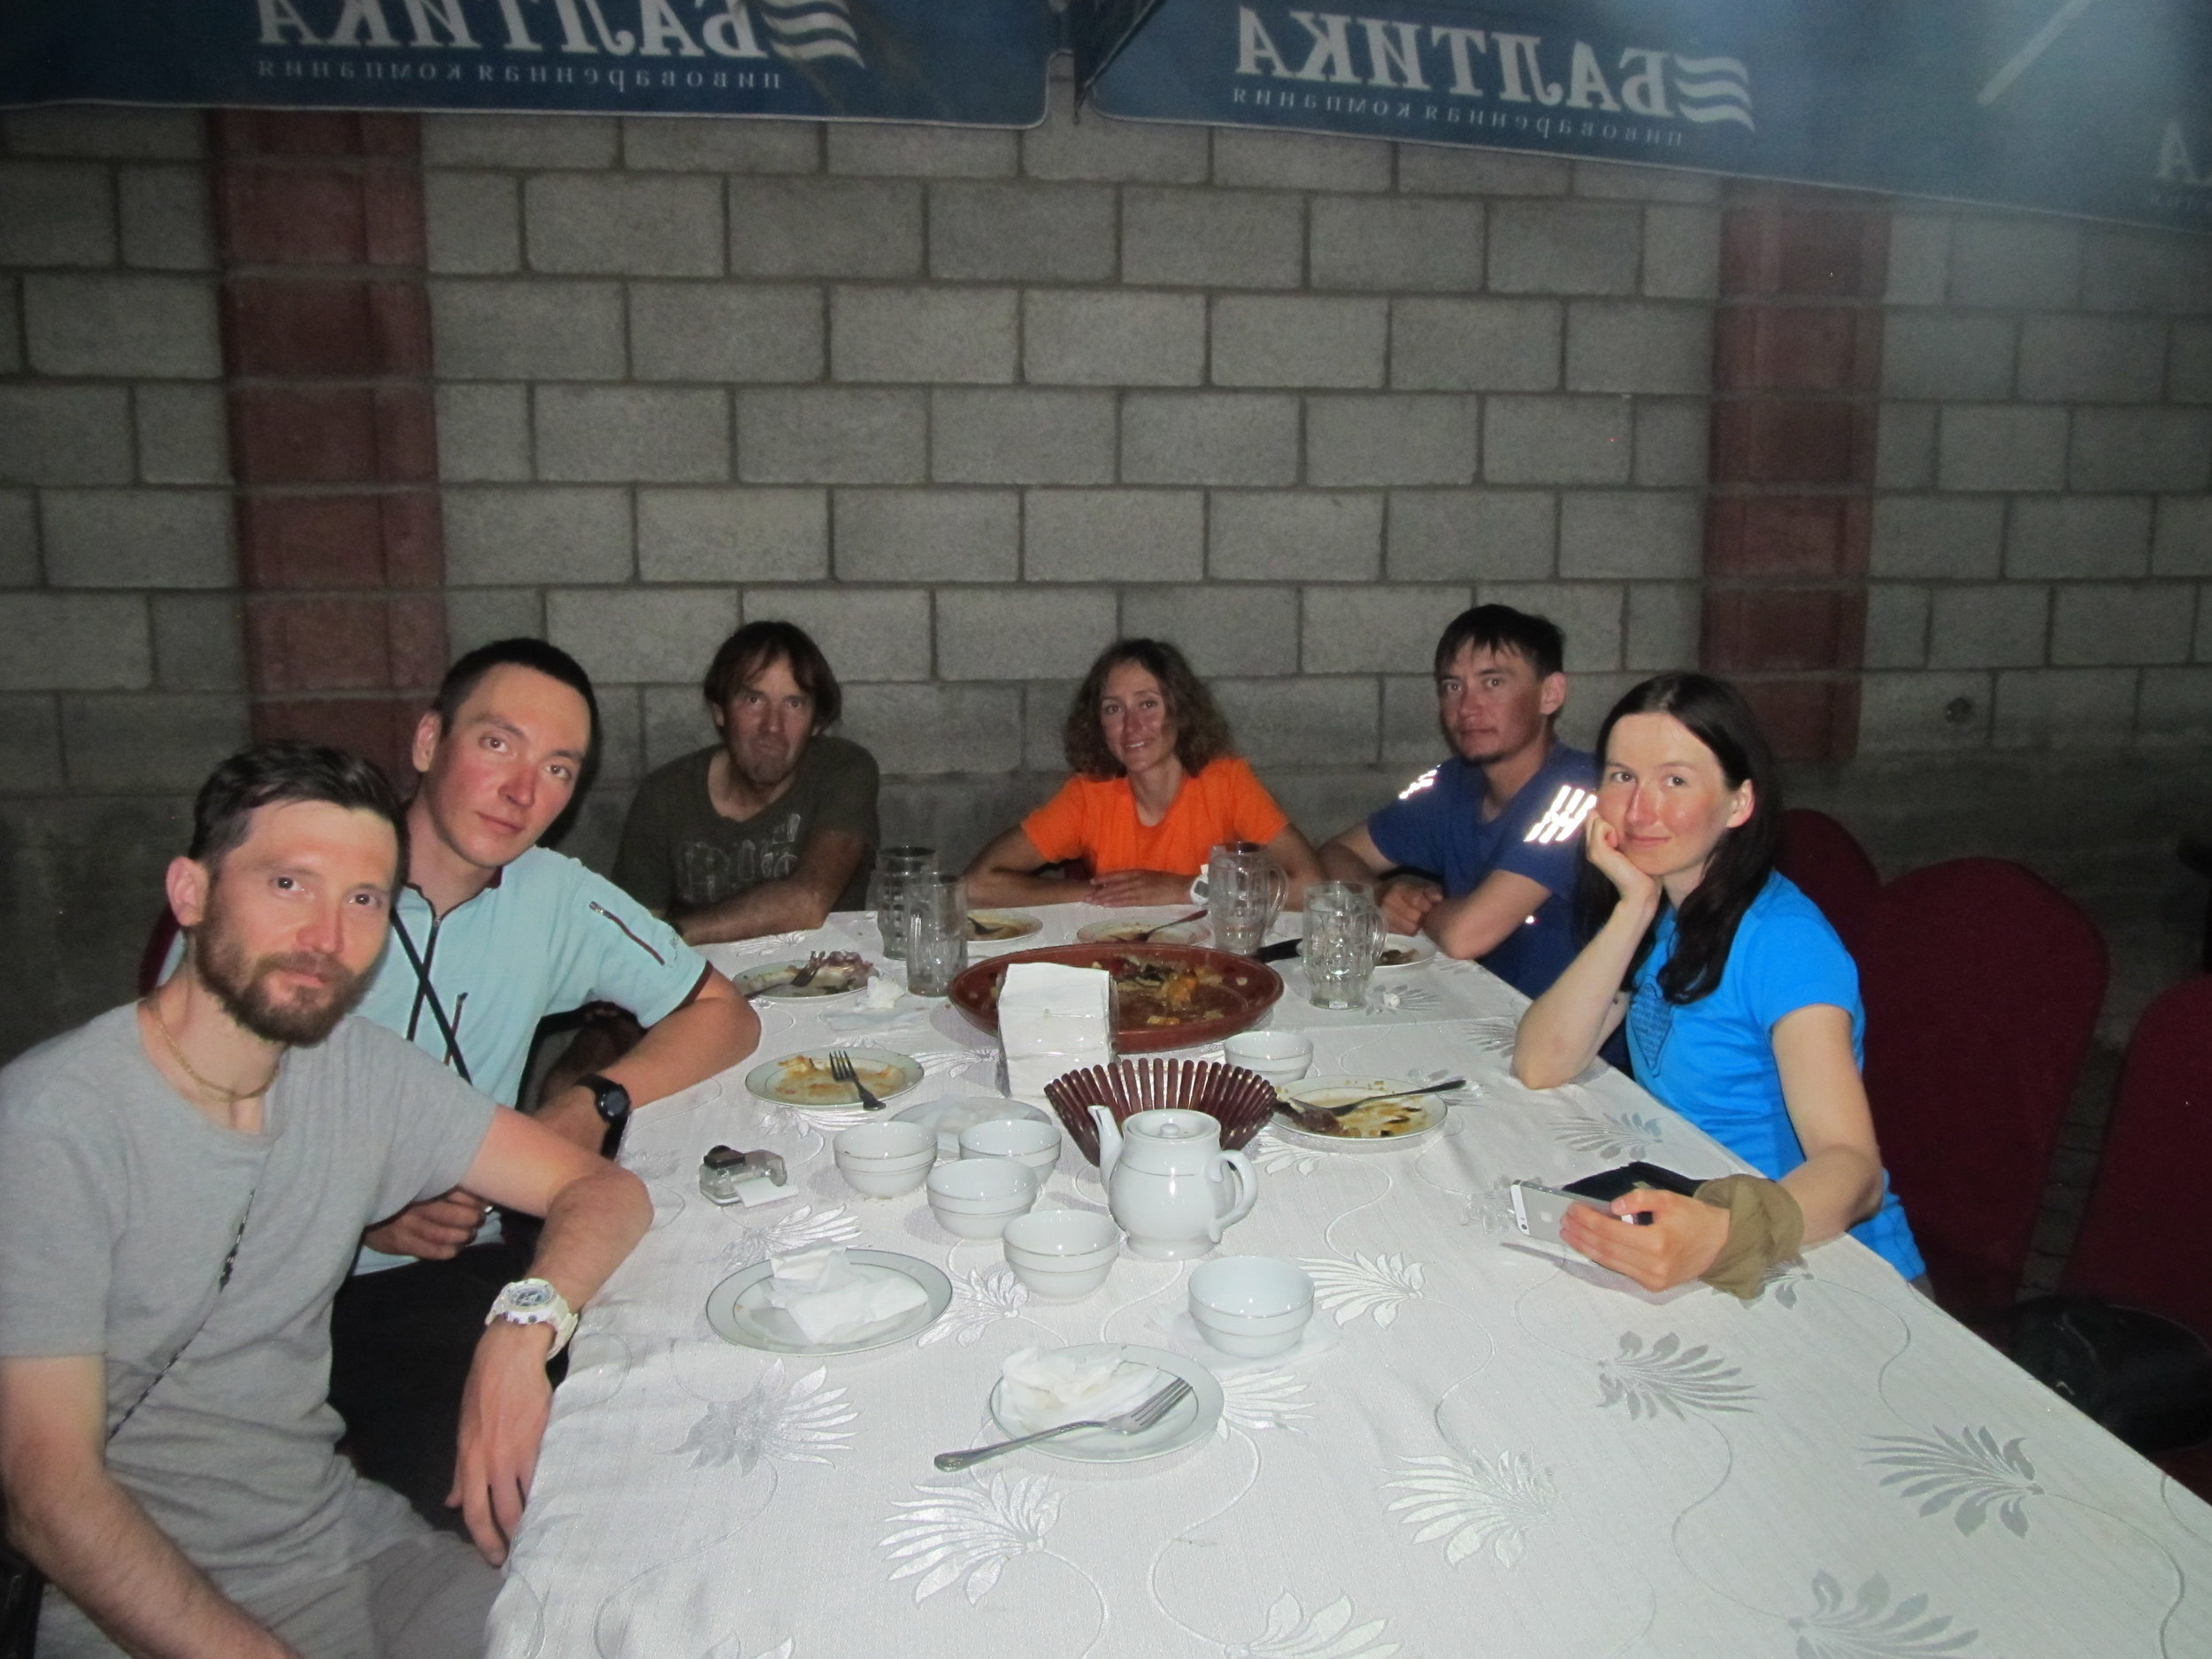 In Osh  I meet up and had dinner with this very friendly group of Russian mountaineers who came from the Southern Urals and just completed a very interesting 5 week traverse of the Alay mountain range